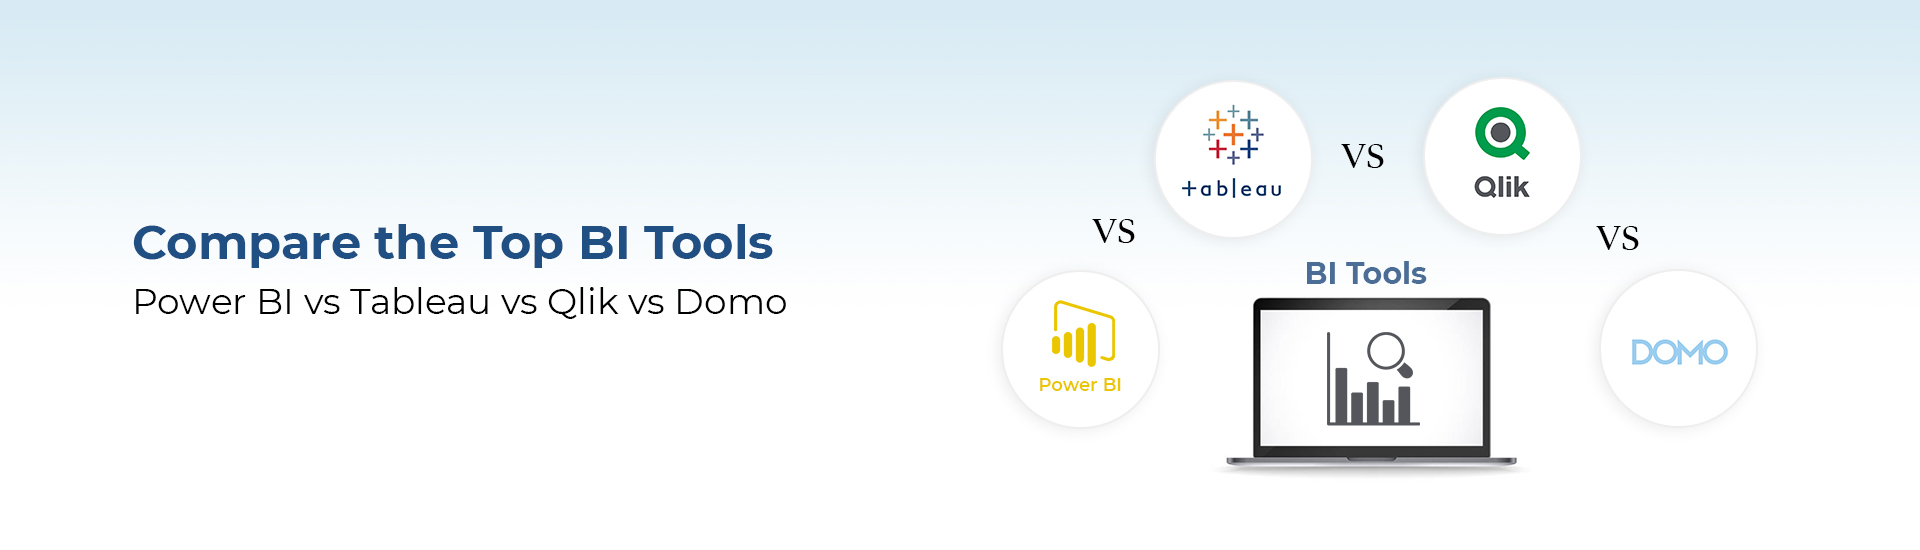 Compare the Top BI Tools: Power BI vs Tableau vs Qlik vs Domo